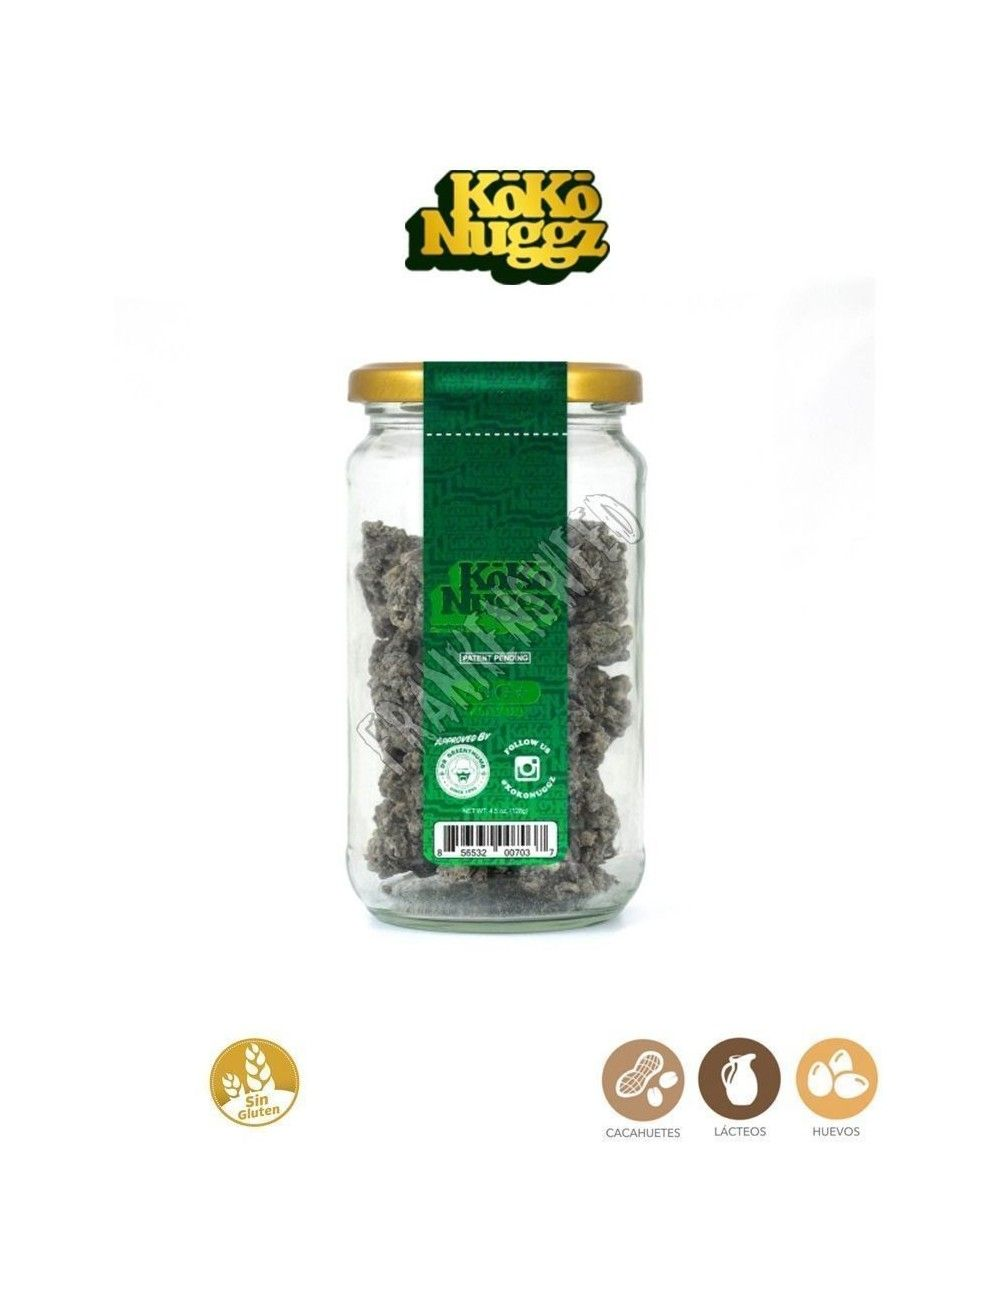 Koko Nuggz - Chocolate Bud - 4.5oz (Glass Jar)